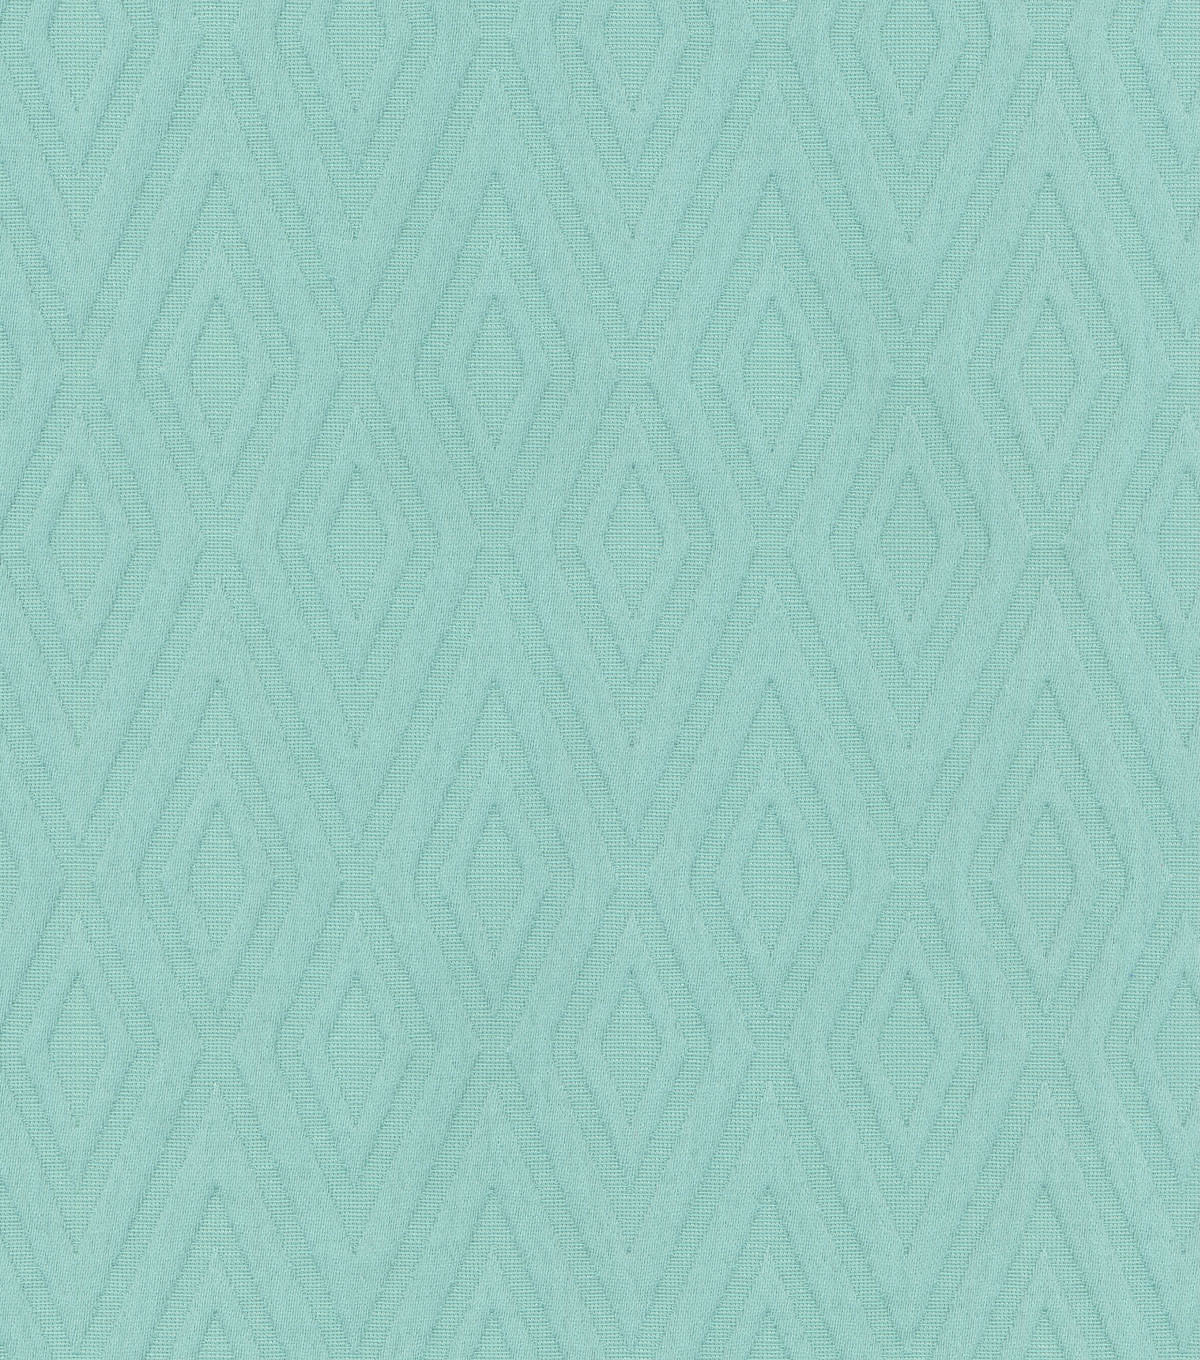 Waverly Lightweight Decor Fabric 57\u0022-Fantastical/Glacier